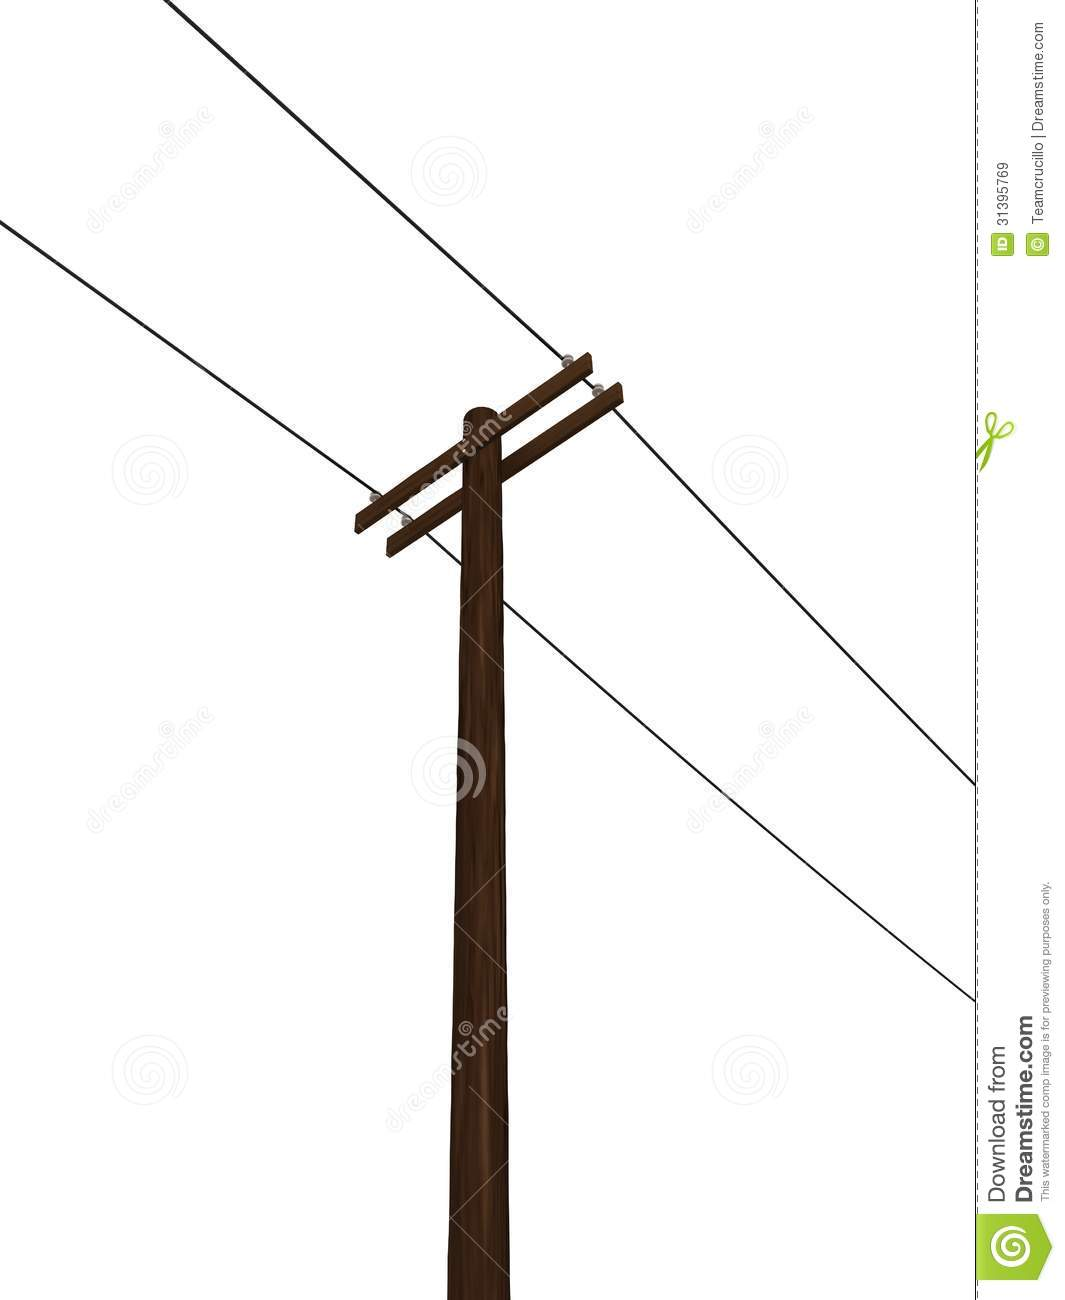 Three Phase Transformer Connection Diagrams Simple Guide About Autotransformer Wiring Diagram Get Free Image 3d Rendered Power Pole Stock Illustration Of Charge 3 Potential